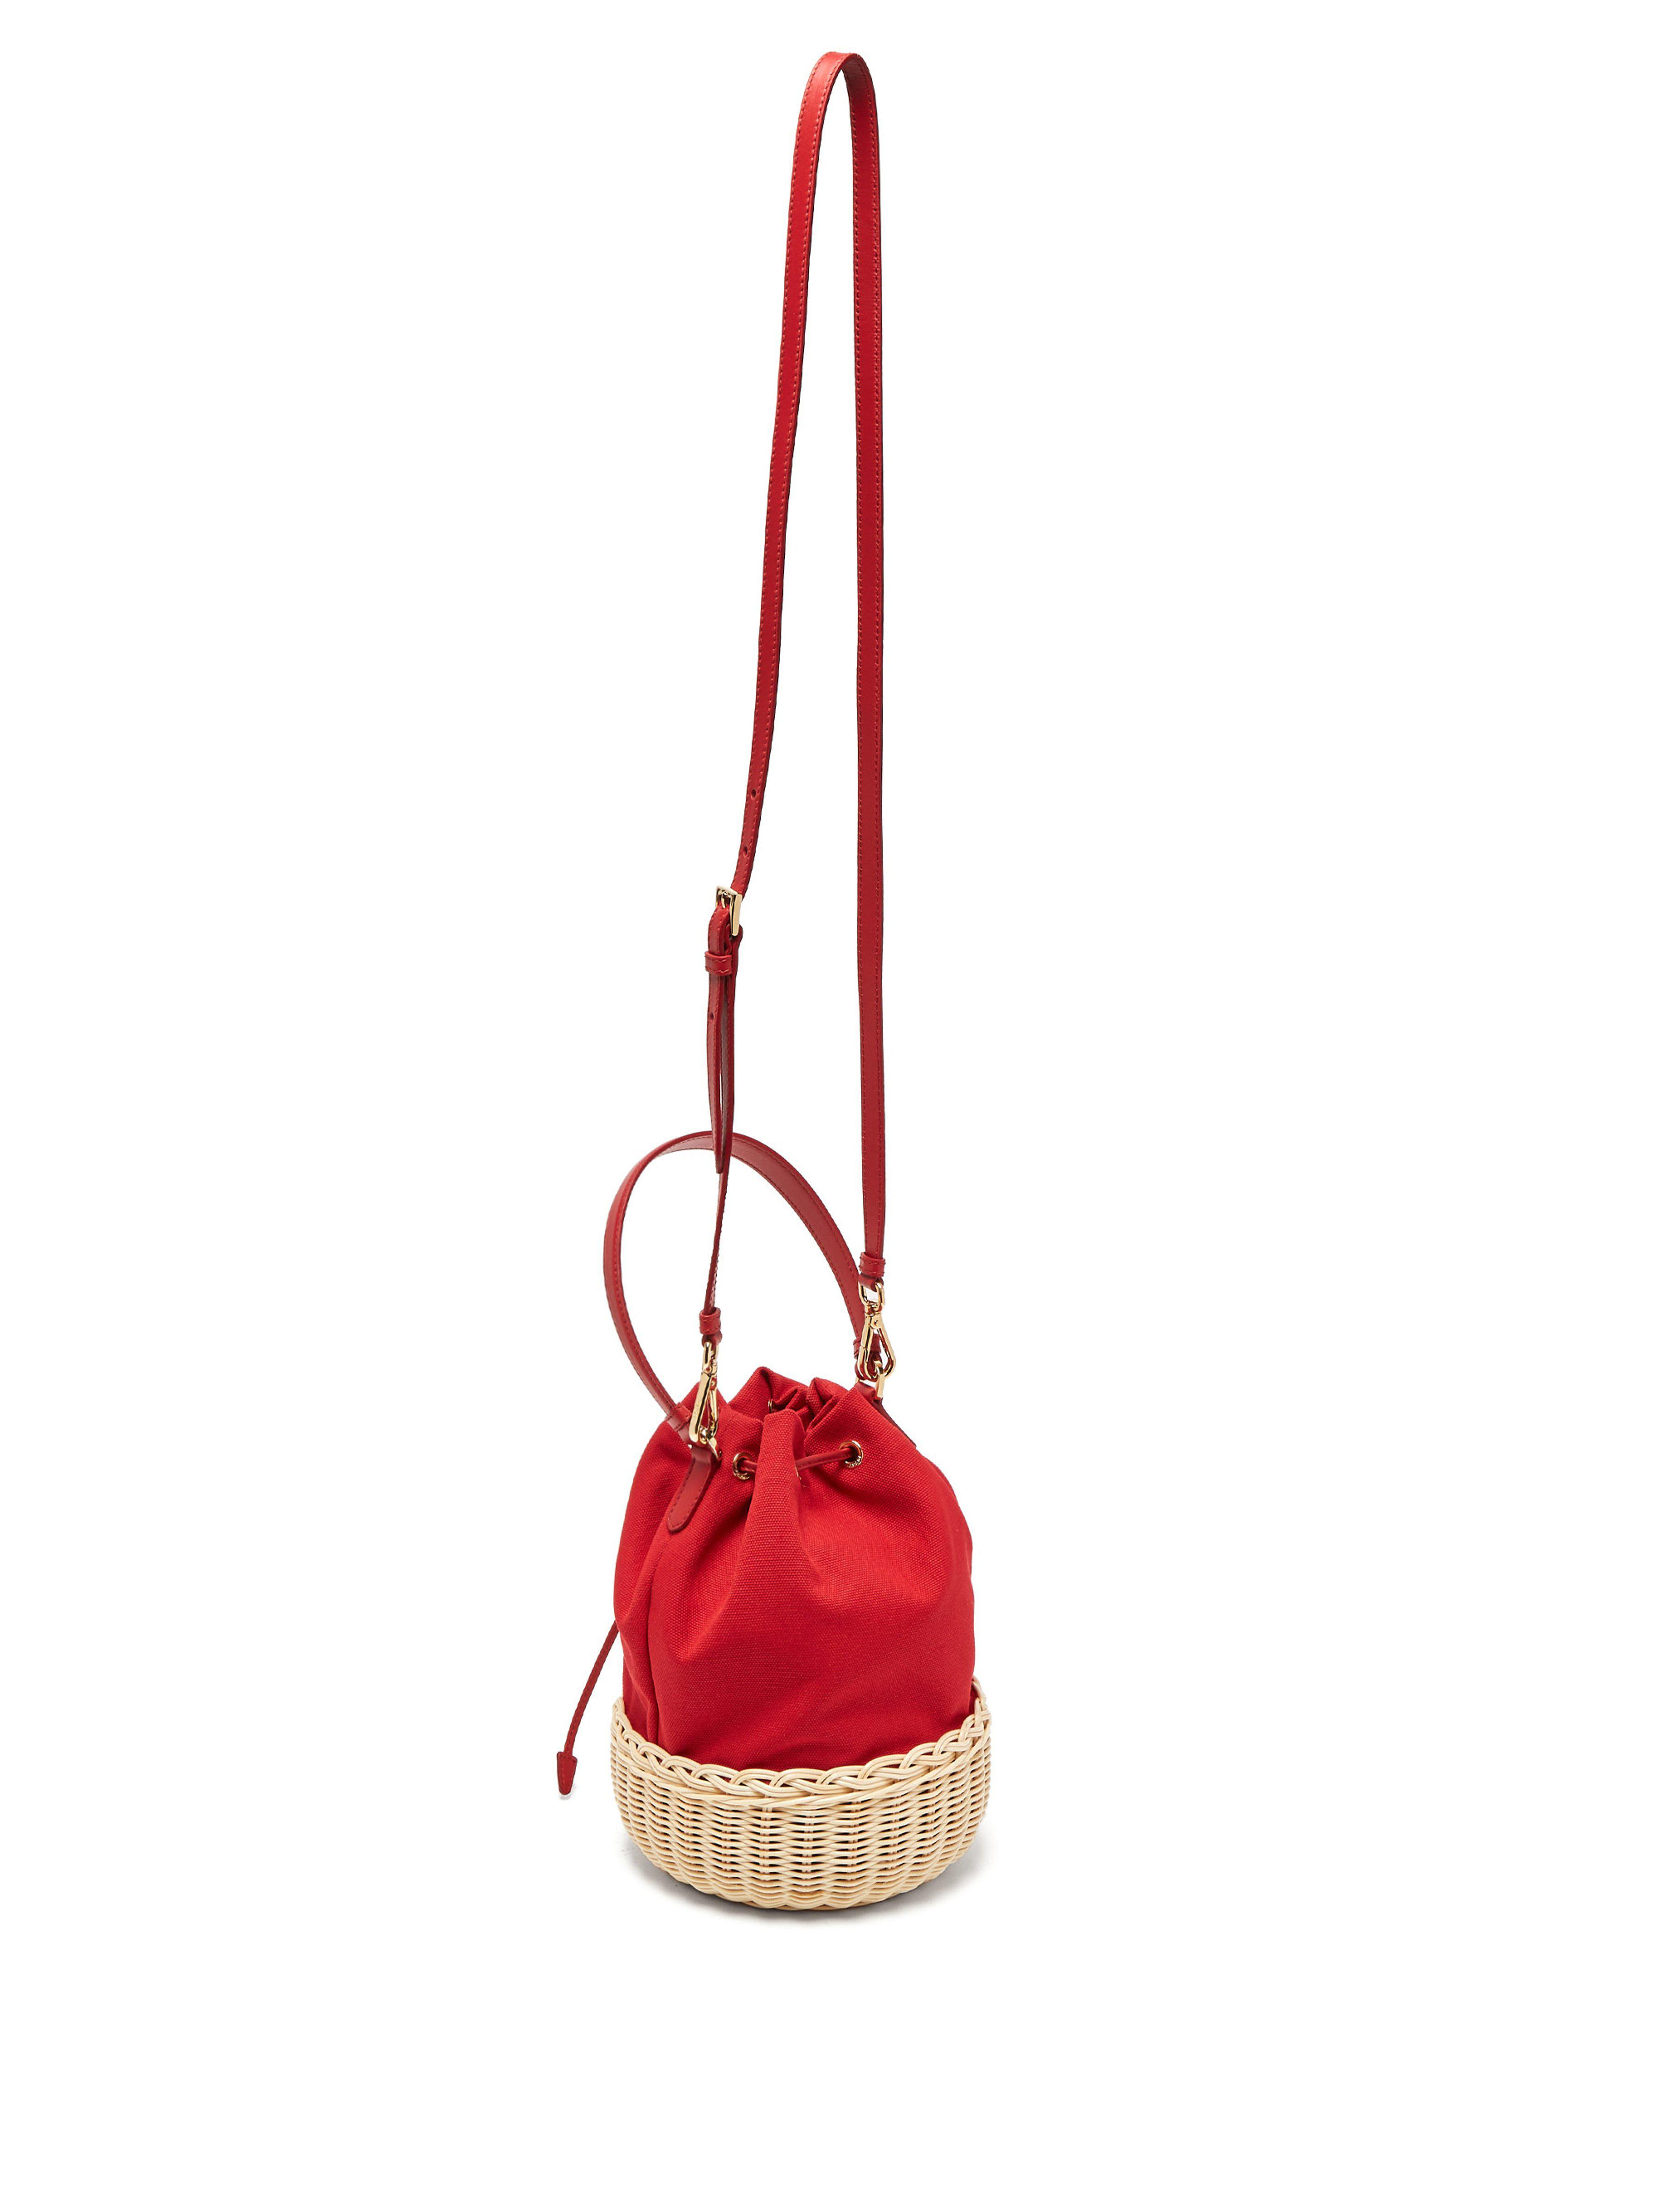 61ac20be4be8 ... Canvas And Woven Straw Bucket Bag - Lyst. View fullscreen